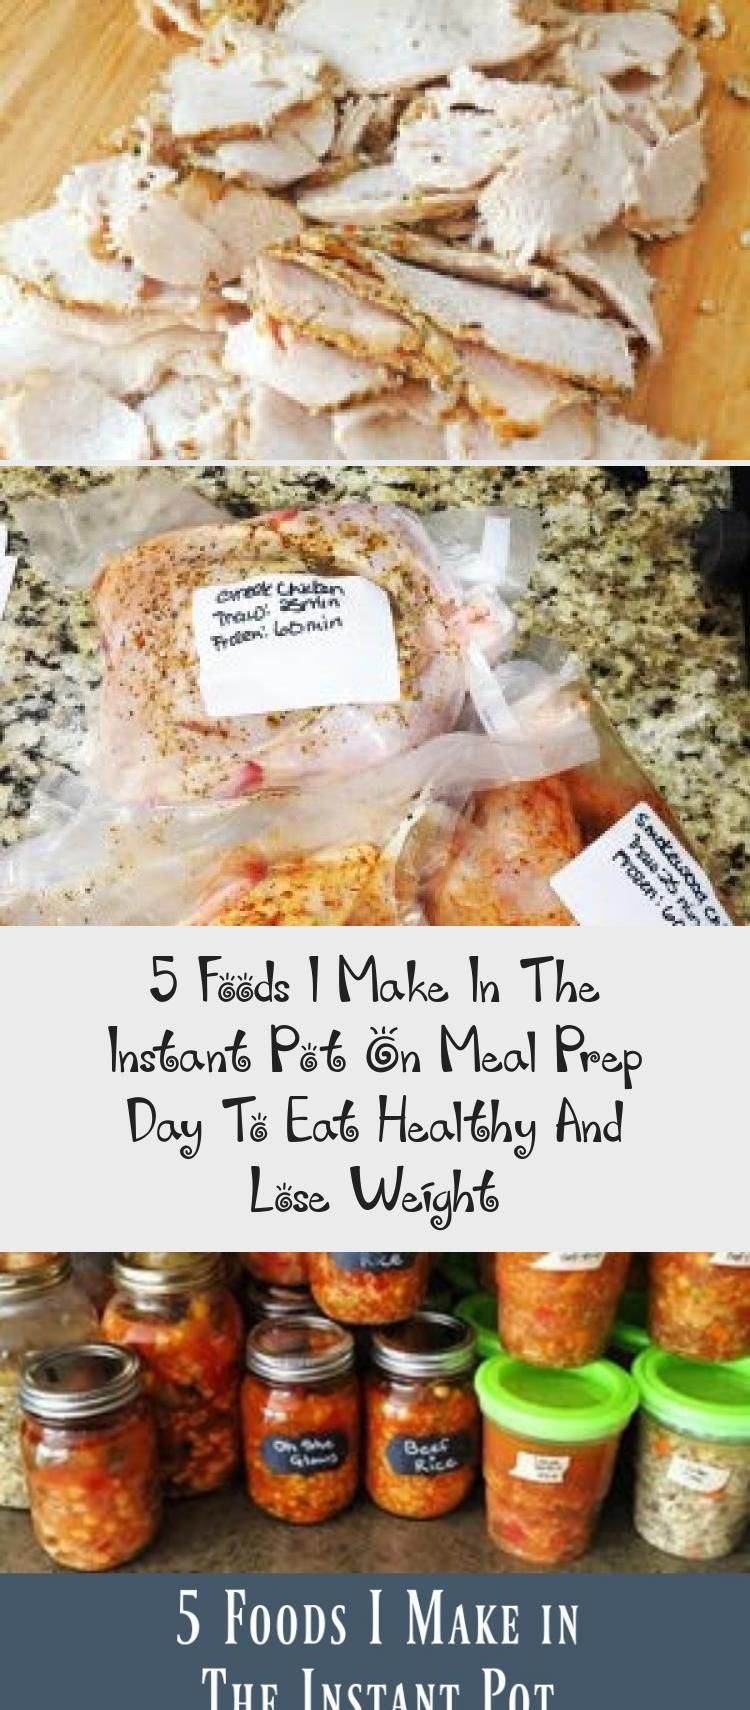 5 Foods I Make In The Instant Pot on Meal Prep Day to Eat Healthy and Lose Weight 10 gold advices to be healthy and live healthy Enjoy your nutrition Take care of variety...